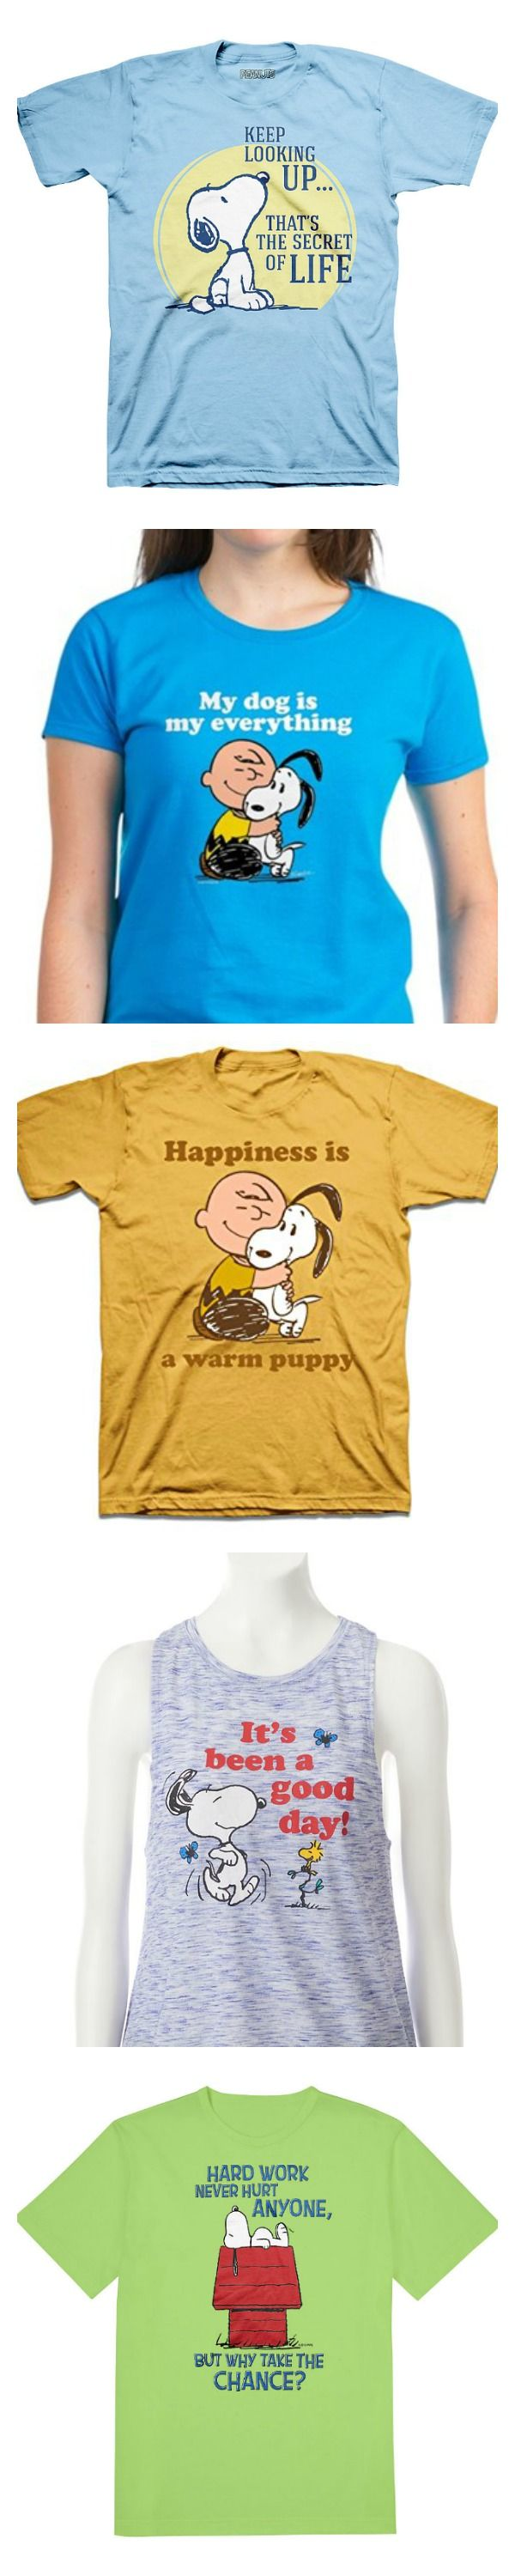 Gear up for Summer with a new Snoopy shirt! Shop our round-up of Peanuts shirts available at variety of online stores. Start shopping via CollectPeanuts.com.